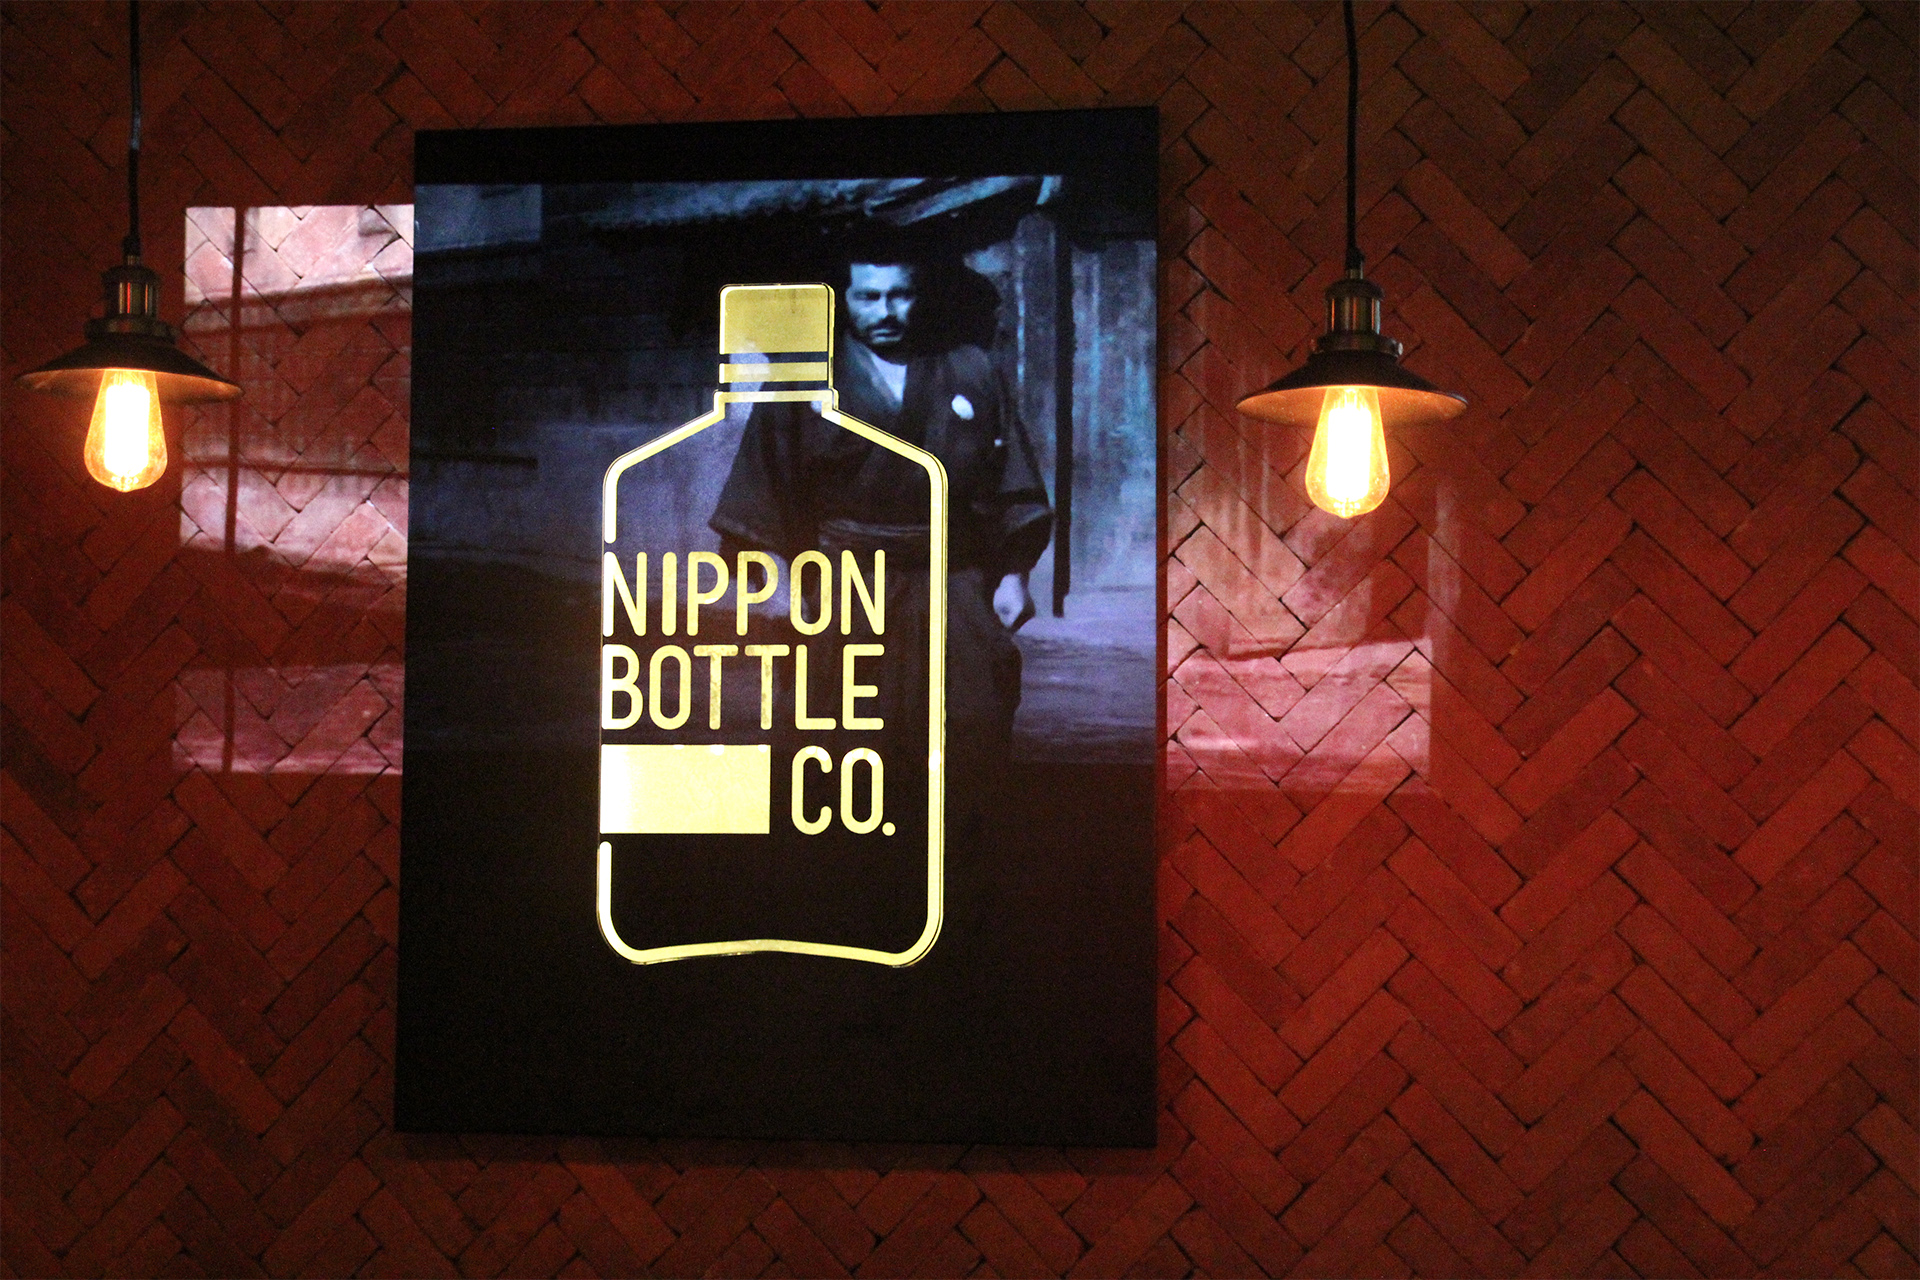 Creneau Interior Design Agency Dubai Middle East Nippon Bottle Company Branding